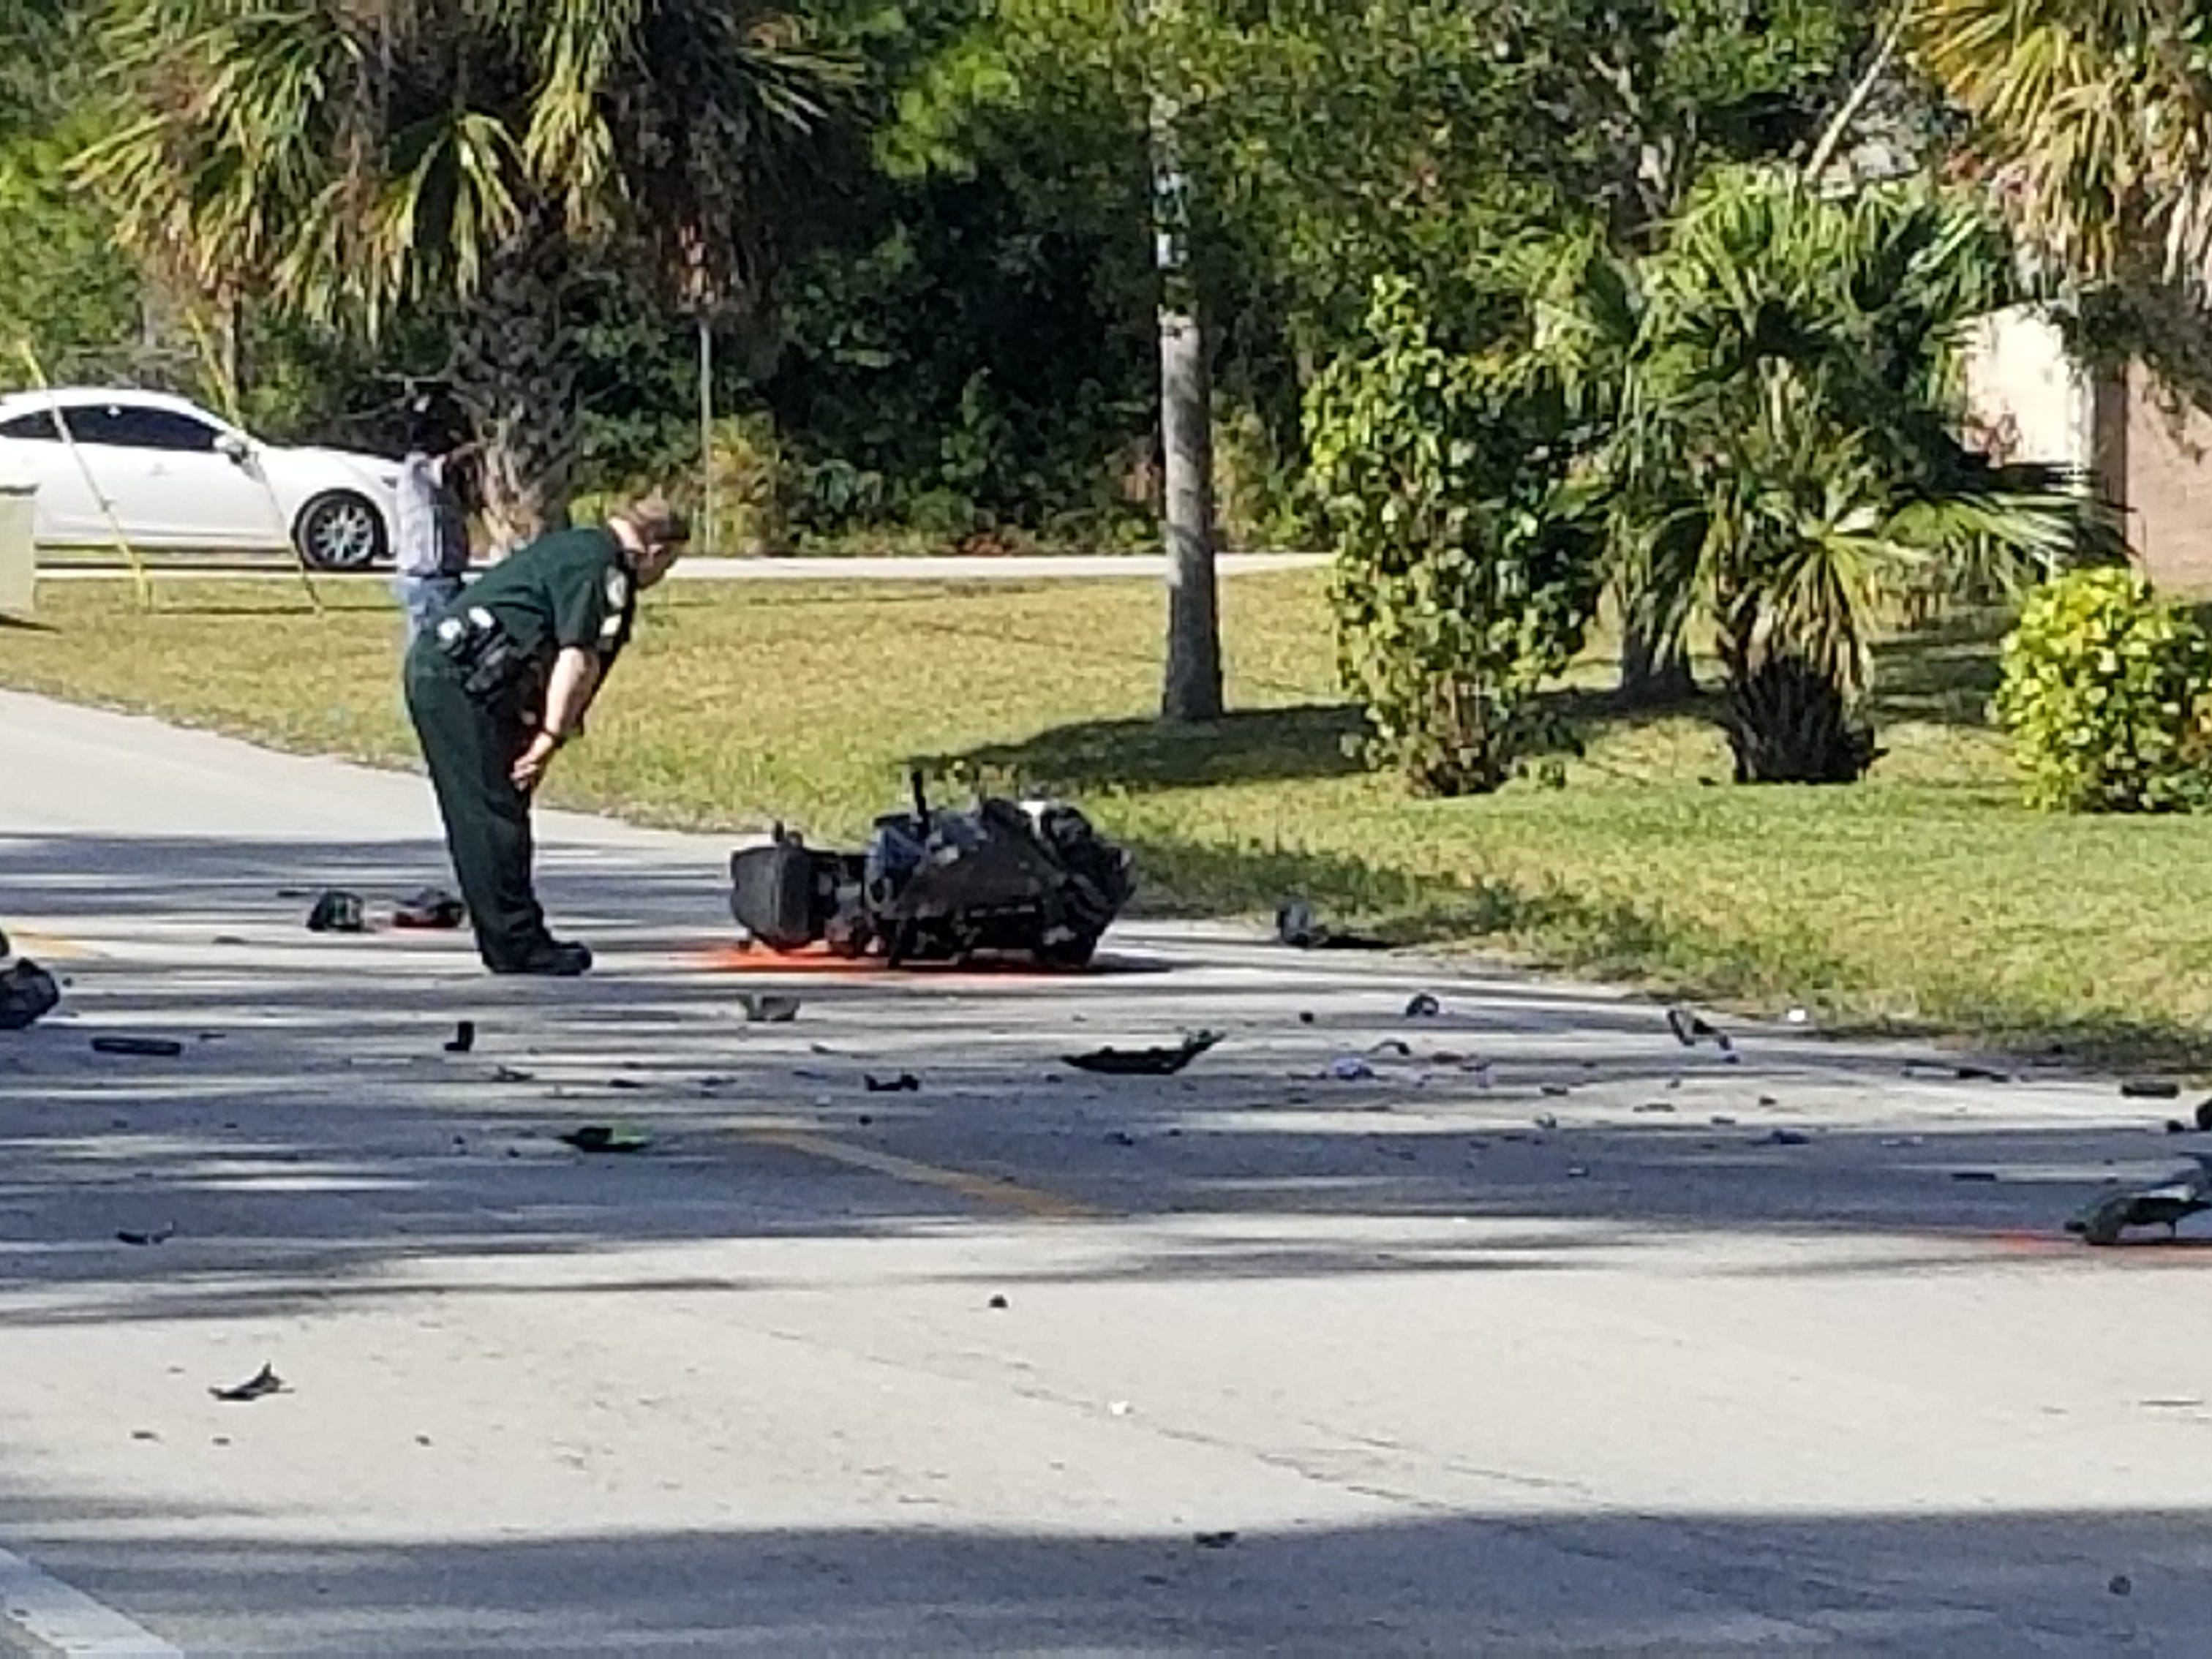 Motorcyclist injured in crash on 45th Street near 48th Avenue Dec. 26, 2018.